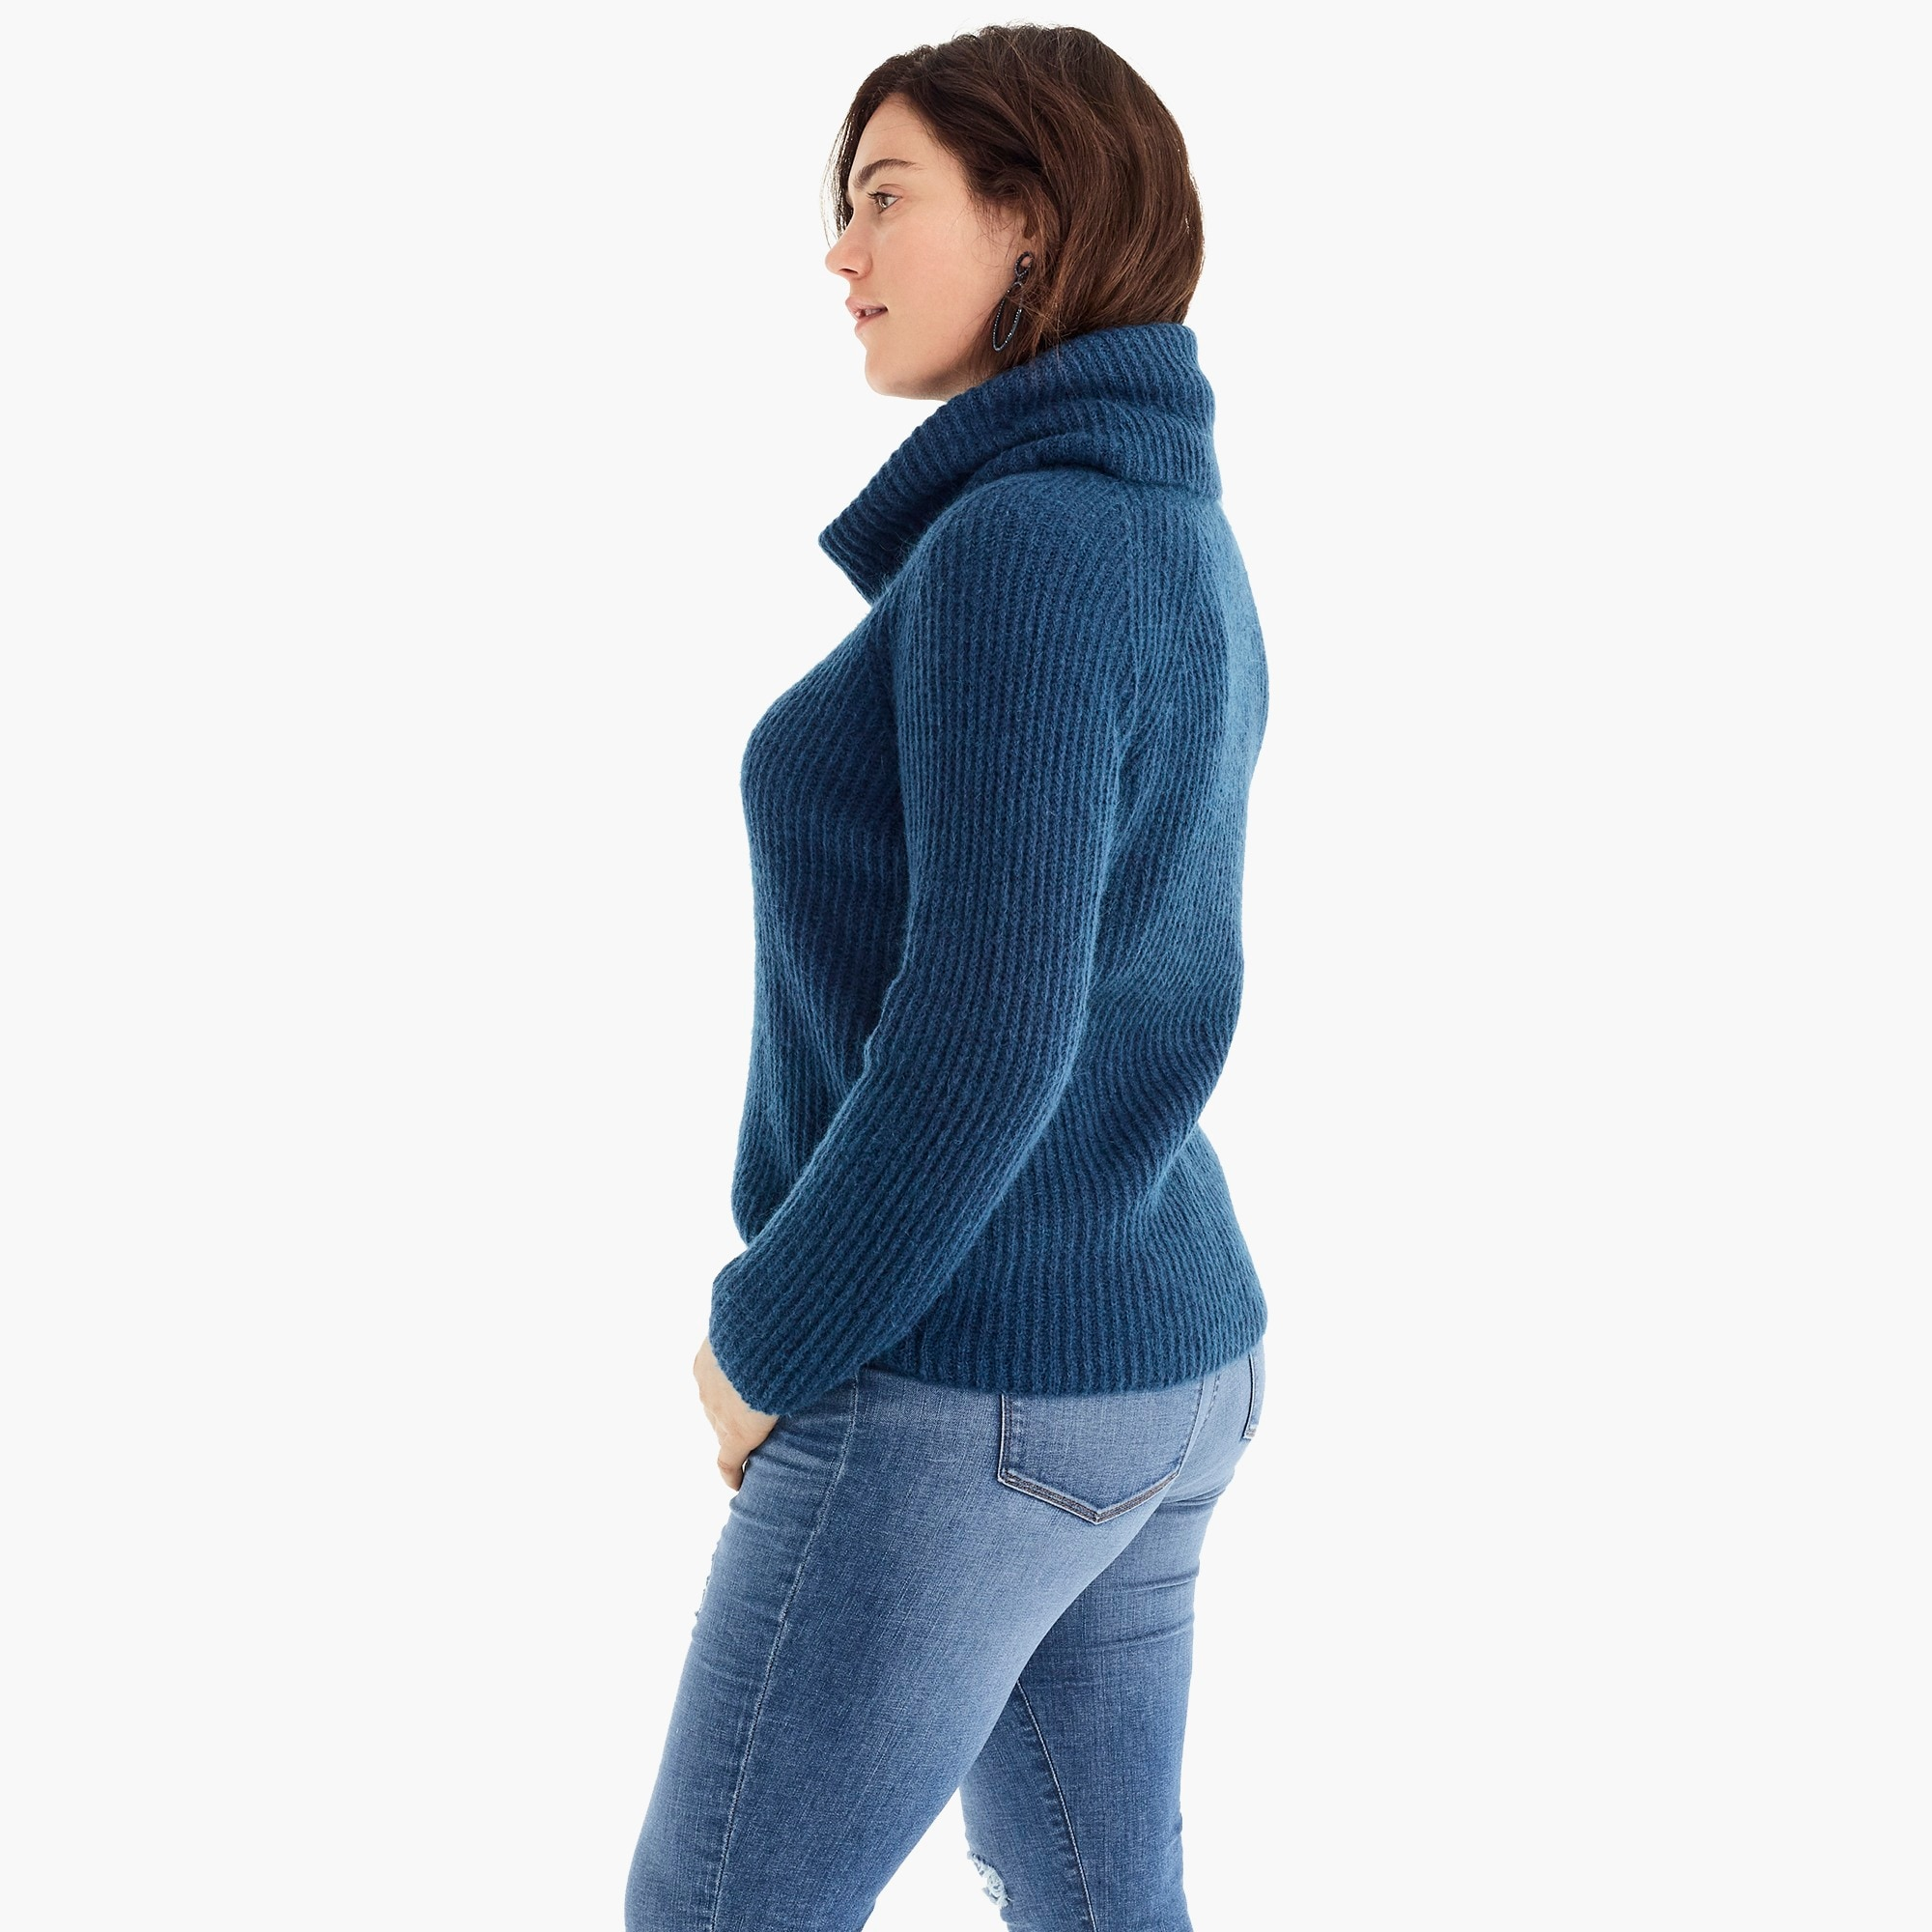 Image 4 for Point Sur ribbed turtleneck sweater